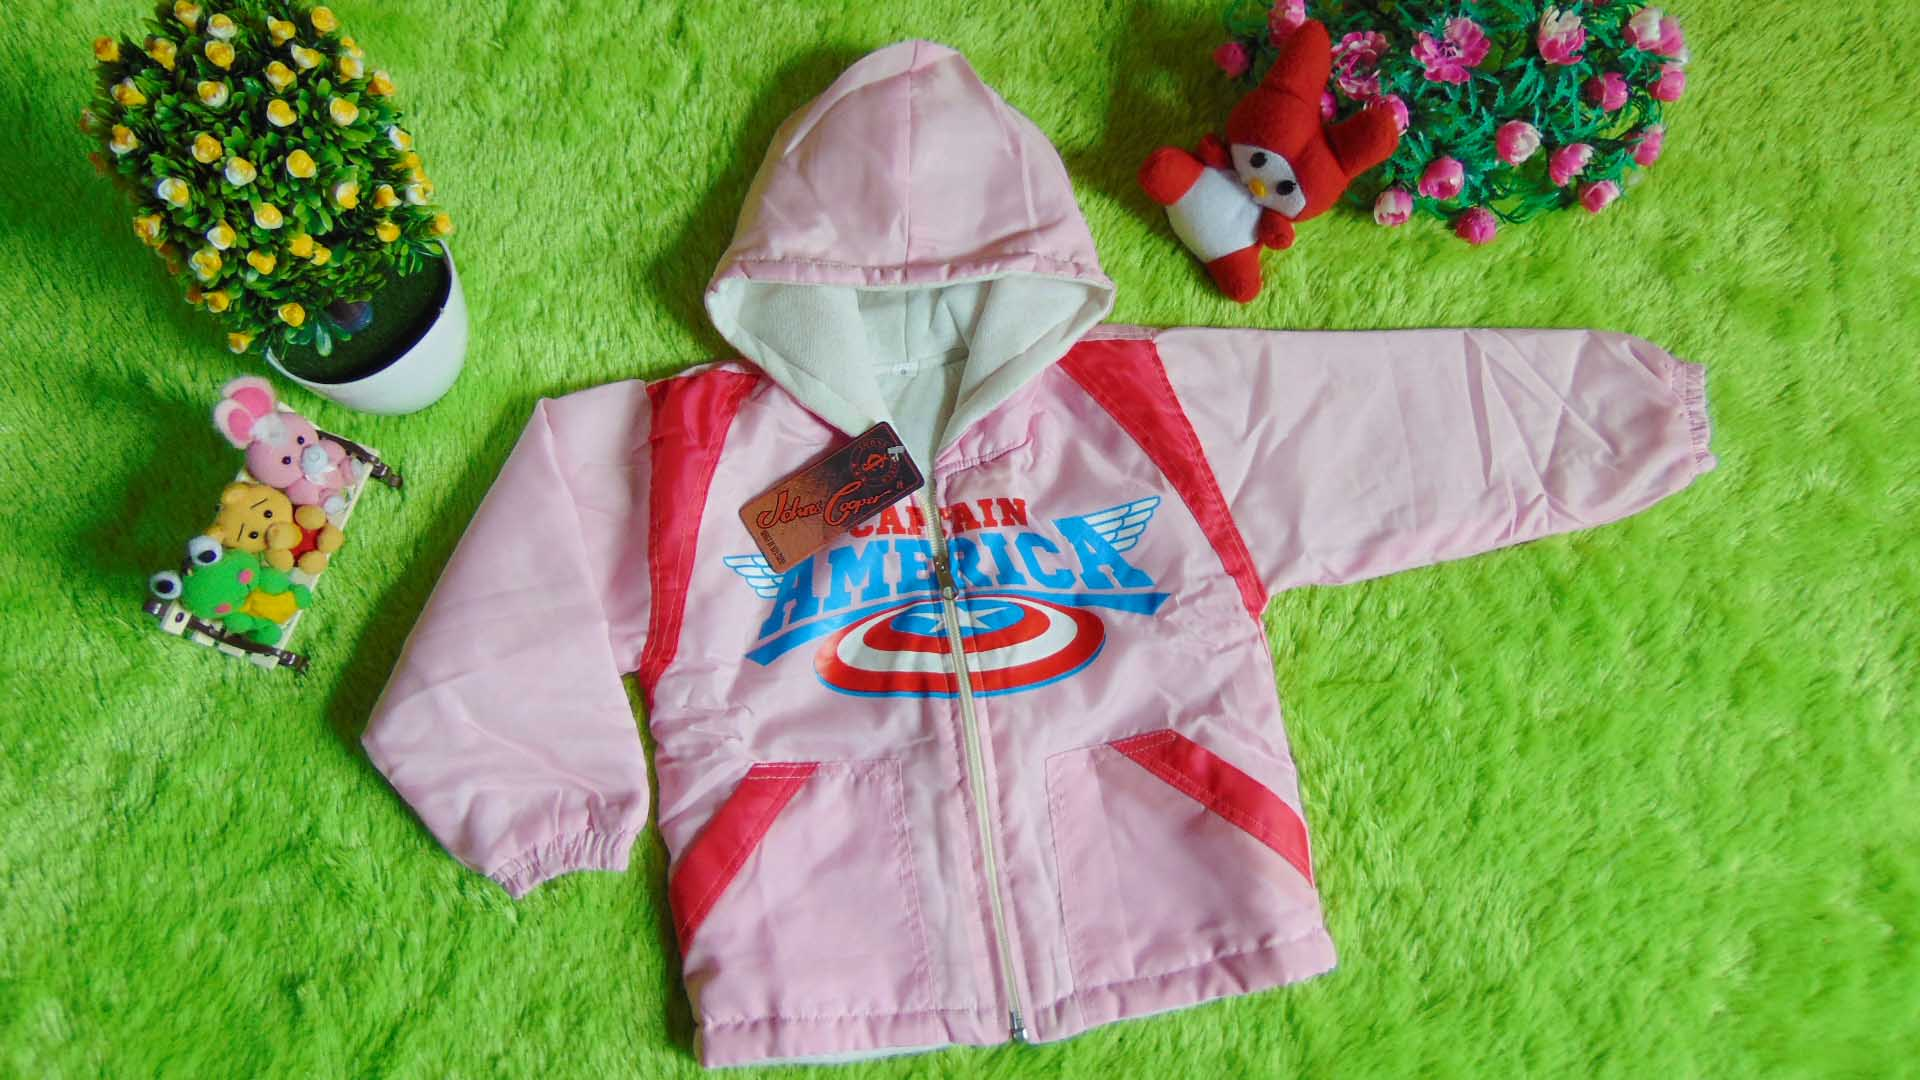 jaket bayi 0-2th waterproof - jaket anti air captain america pink 55 lebar dada 32cm,panjang ke bawah 34cm (2)